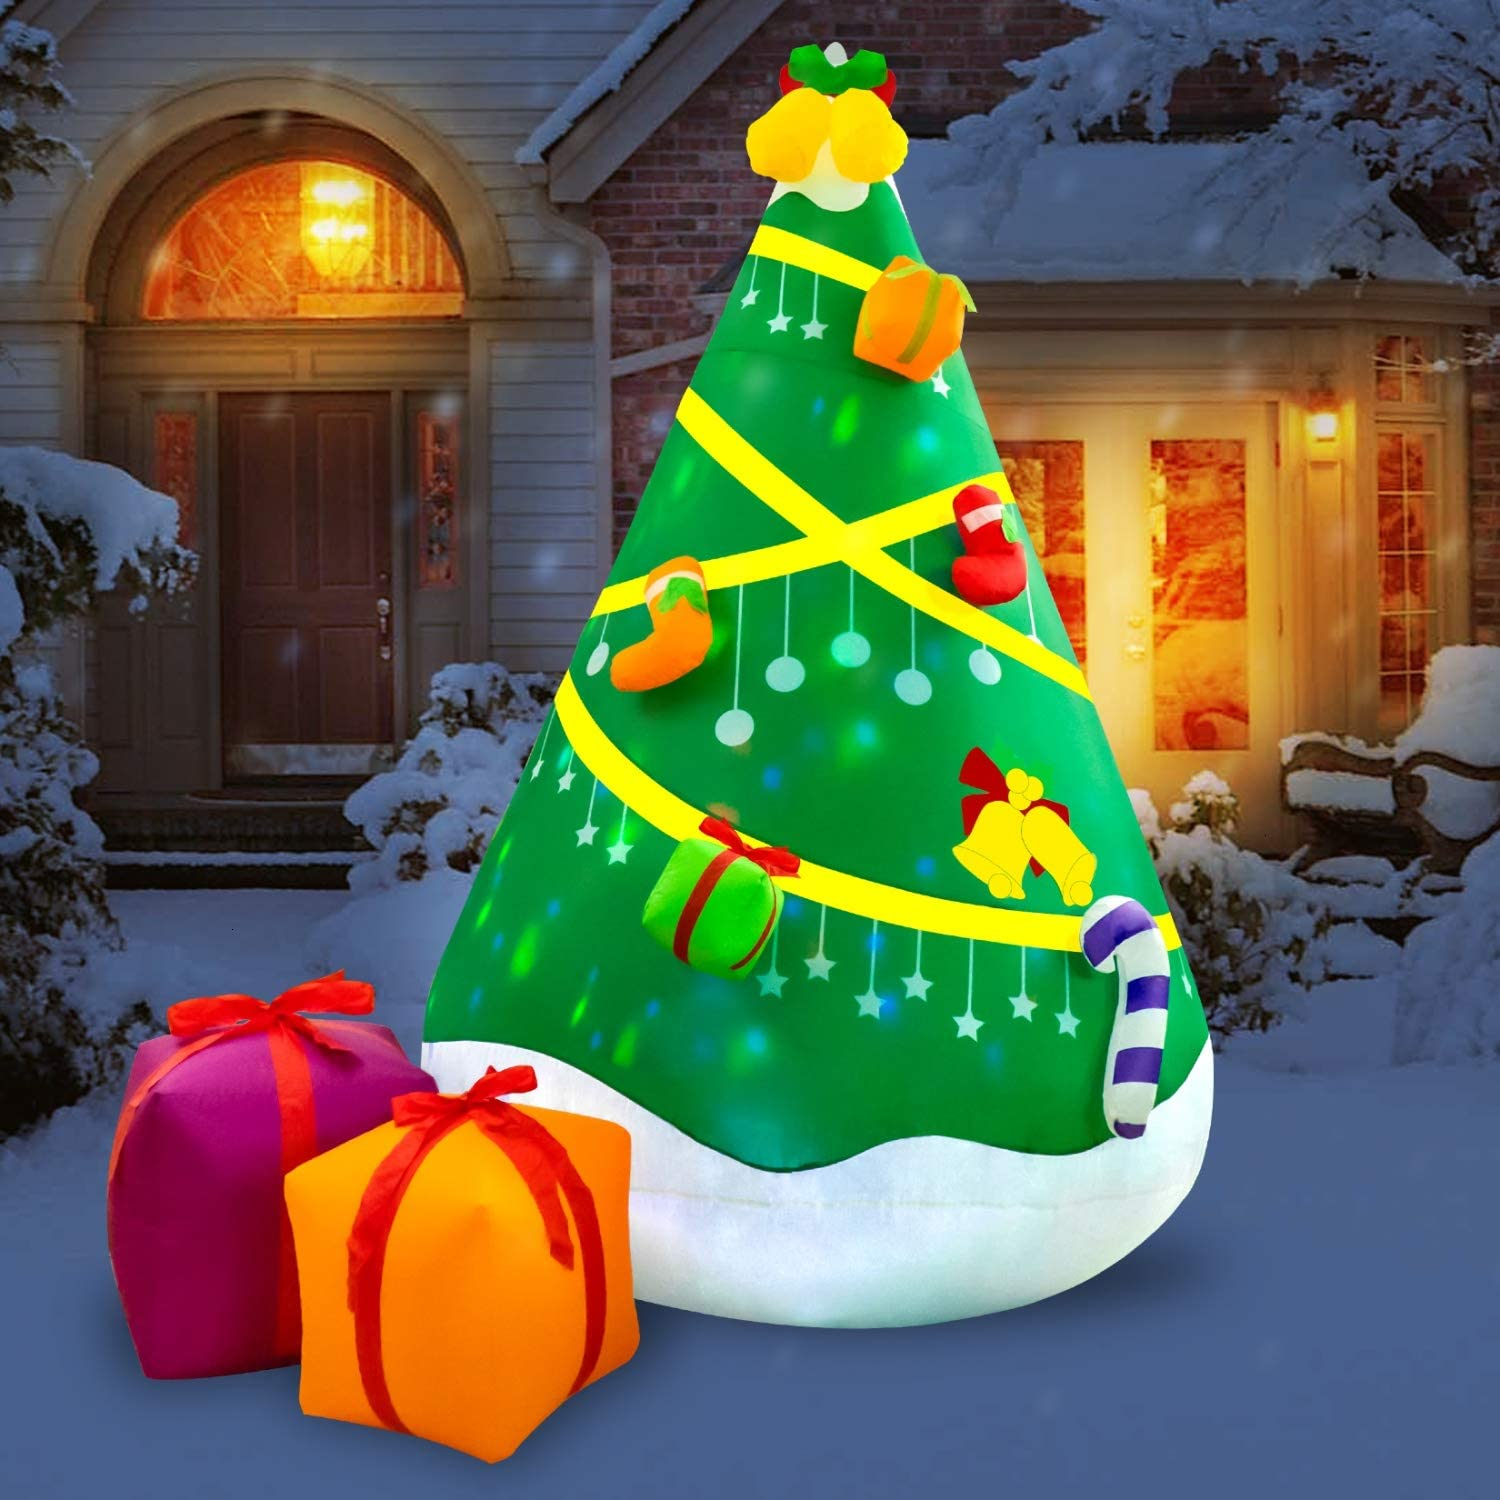 Rocinha Inflatable Christmas Tree, 7.9 FT Christmas Tree Inflatables Blow up Xmas Tree Built-in LED Lights for Christmas Party Indoor Outdoor Yard and Garden Decorations